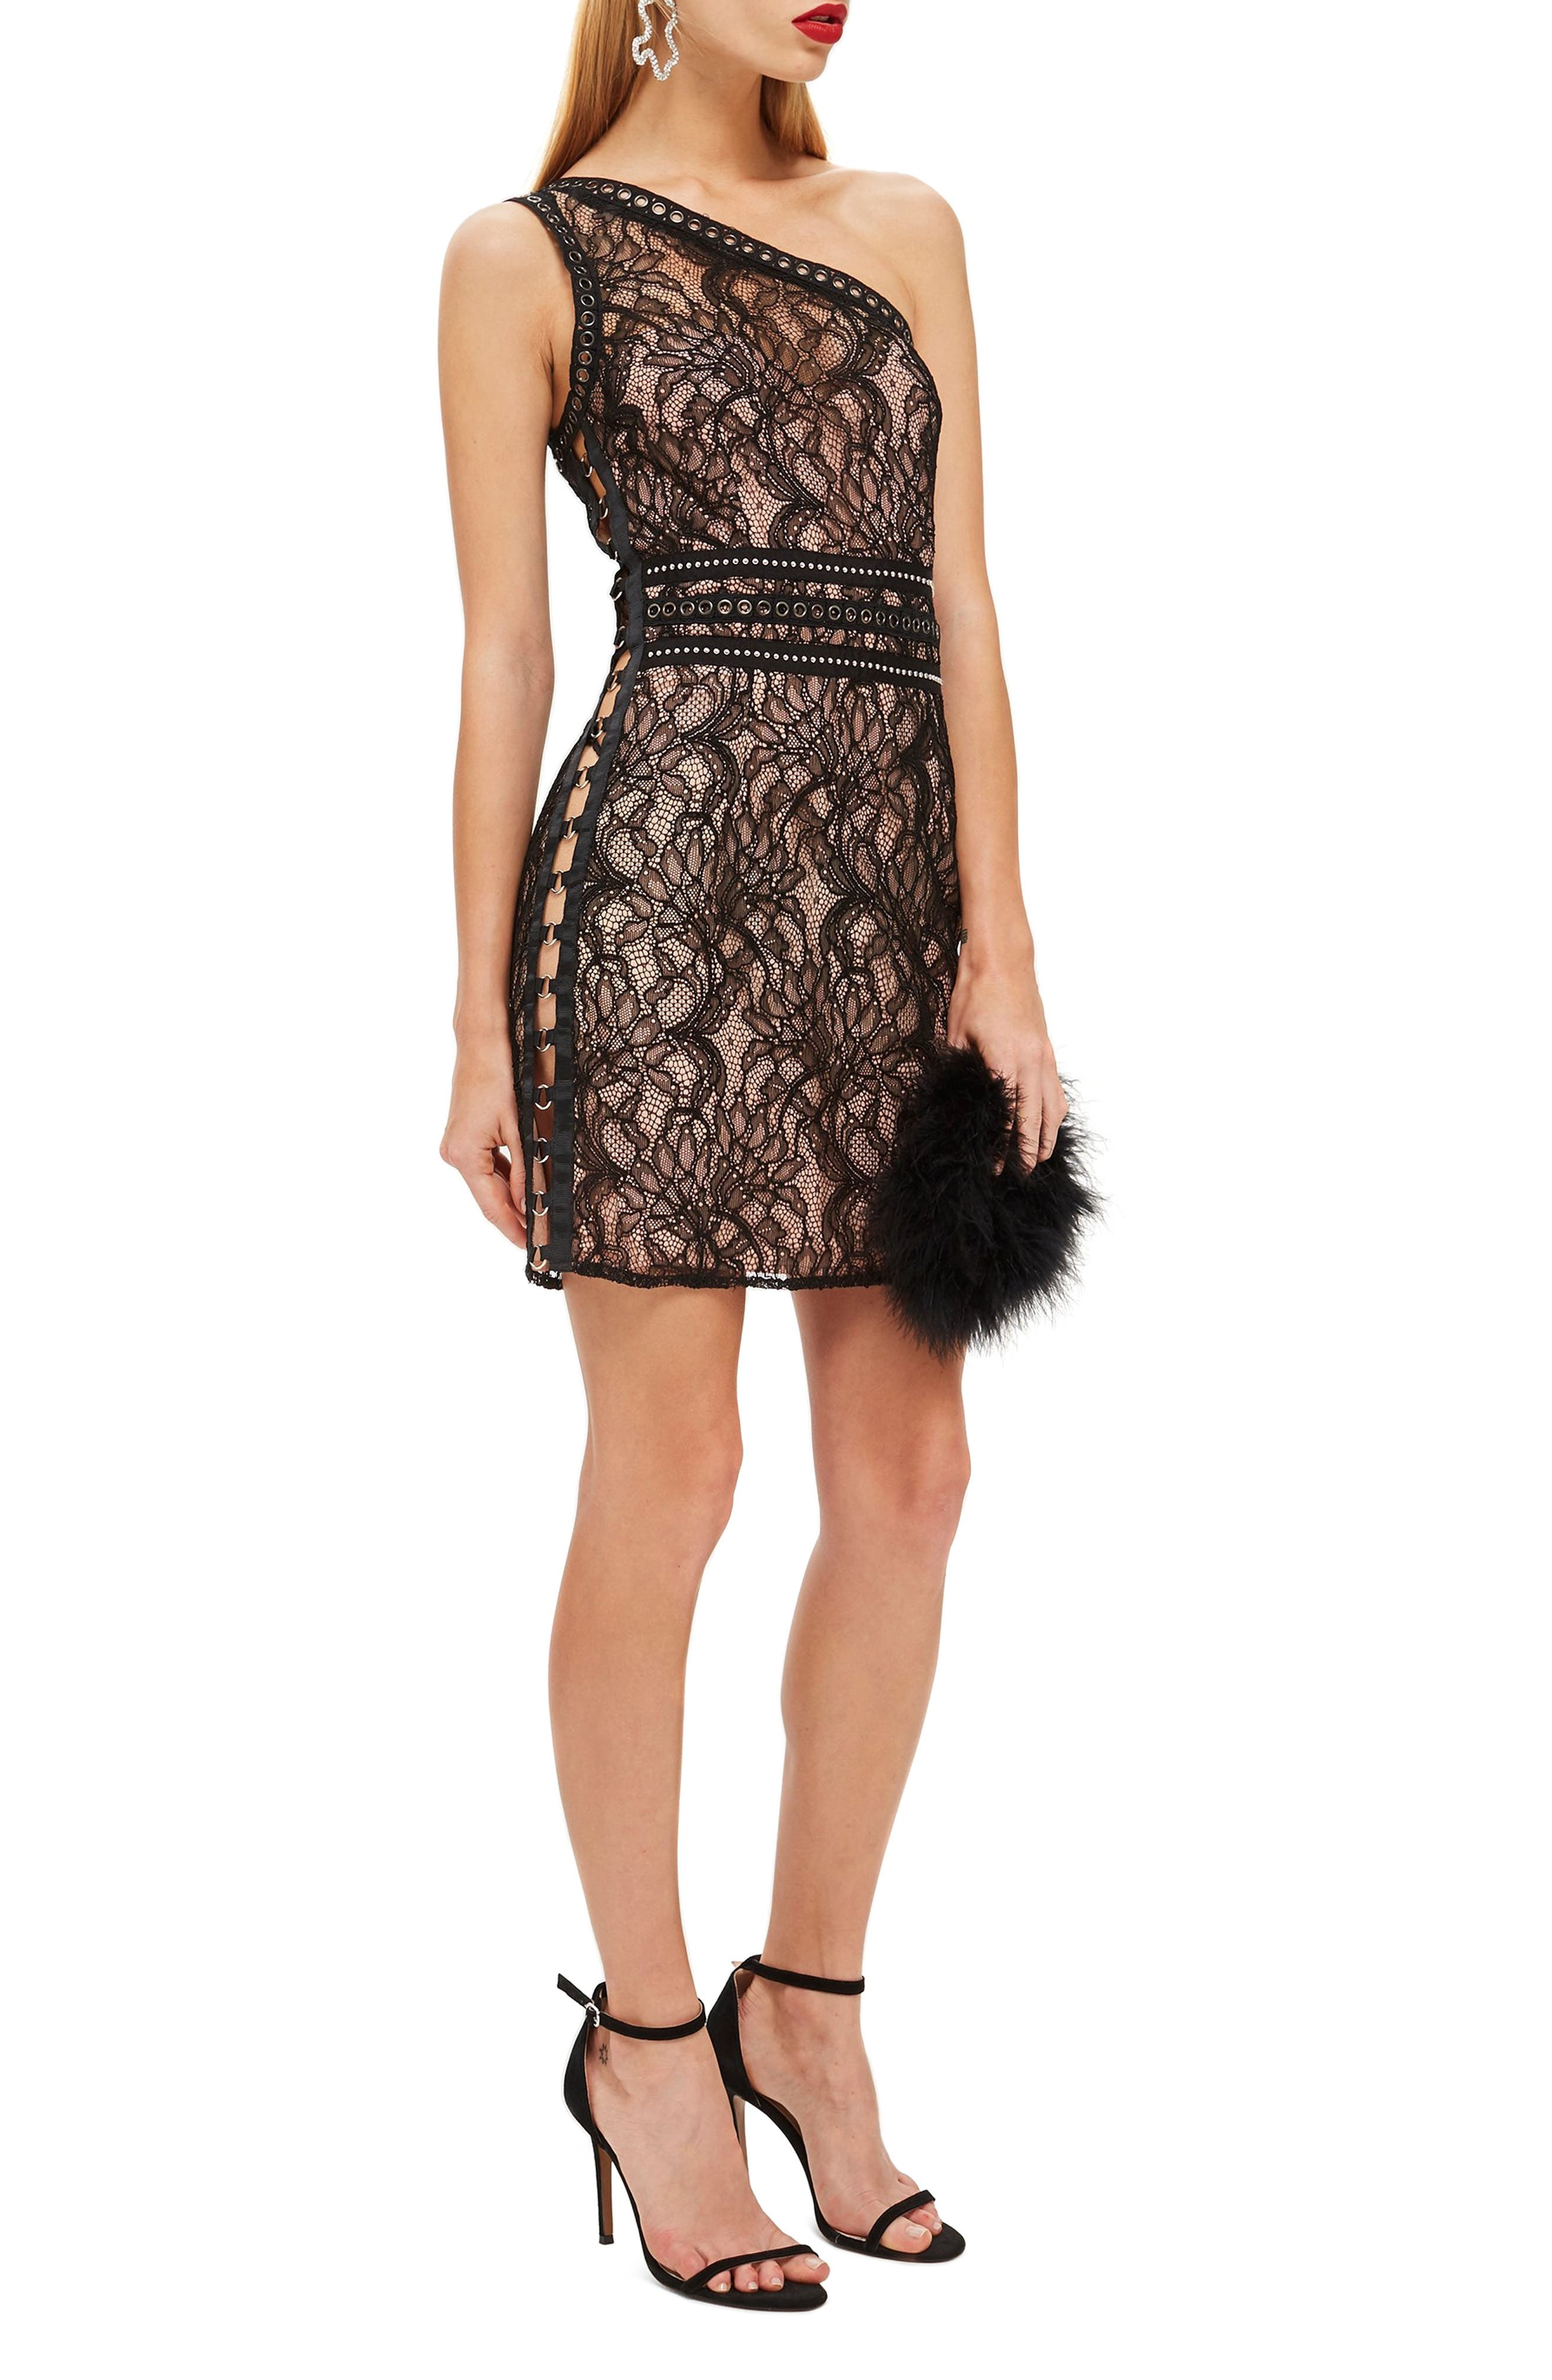 Topshop One-Shoulder Lace Body-Con Dress